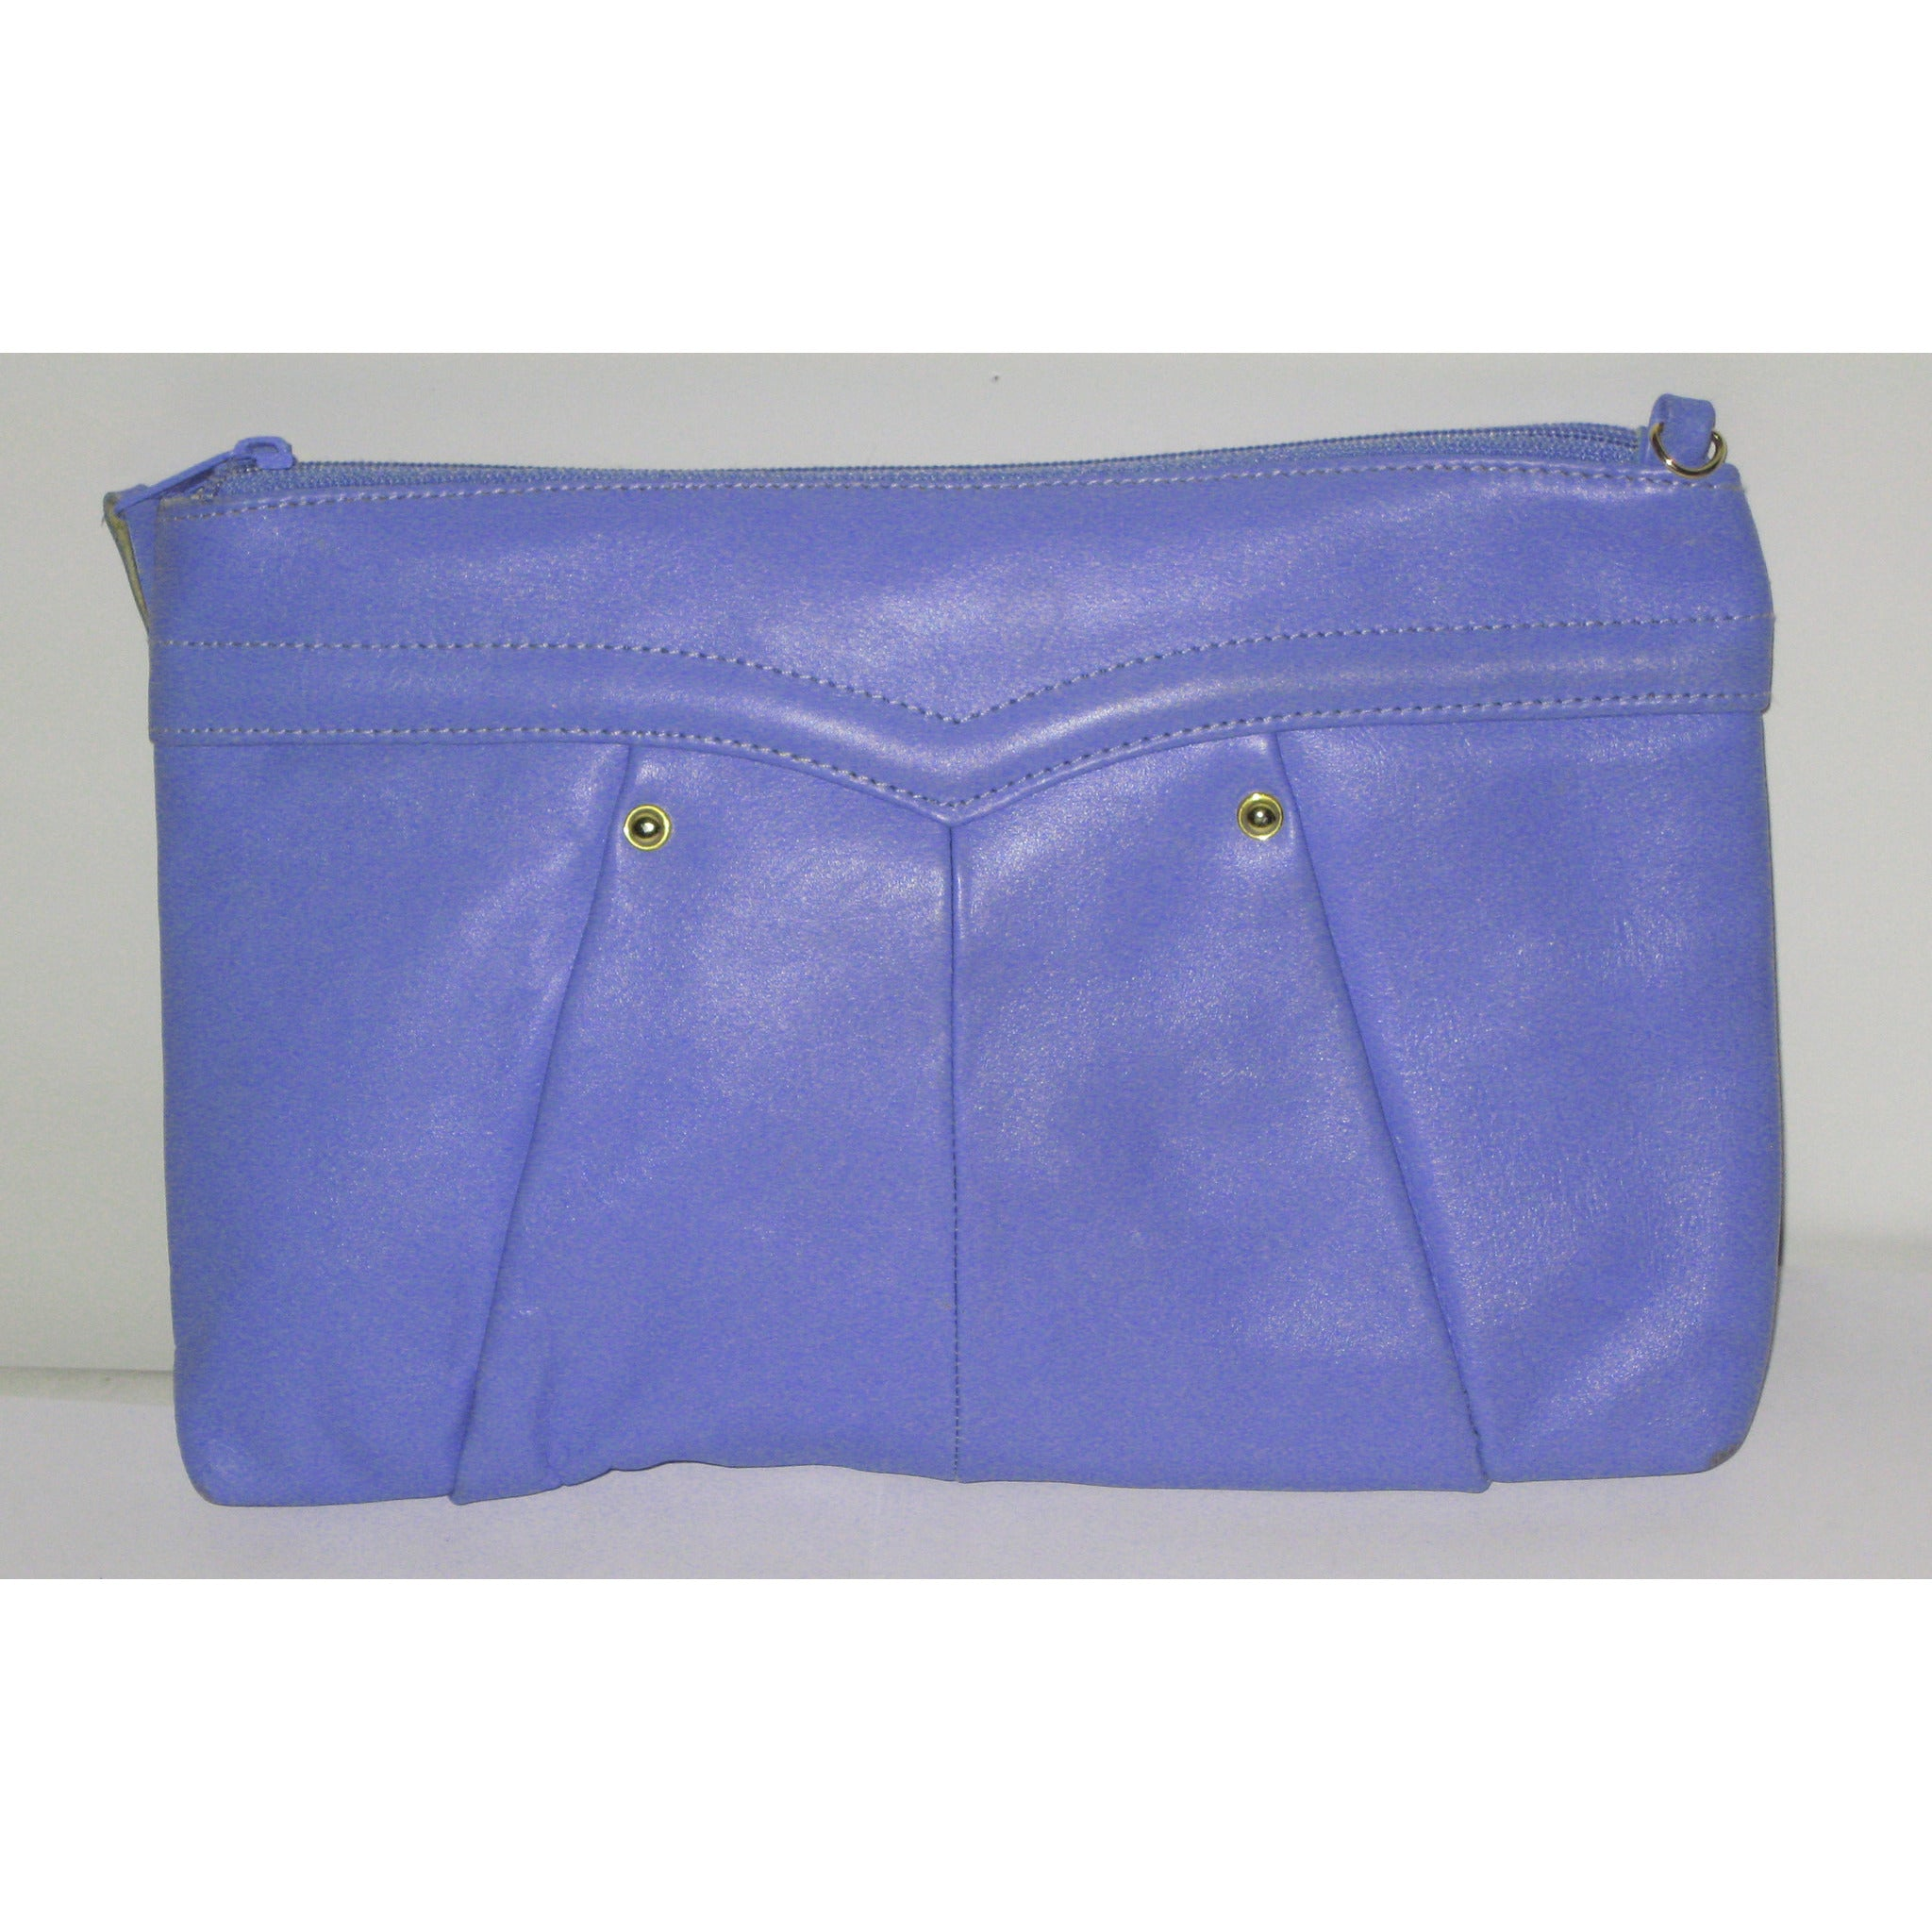 Vintage Periwinkle Leather Clutch Purse